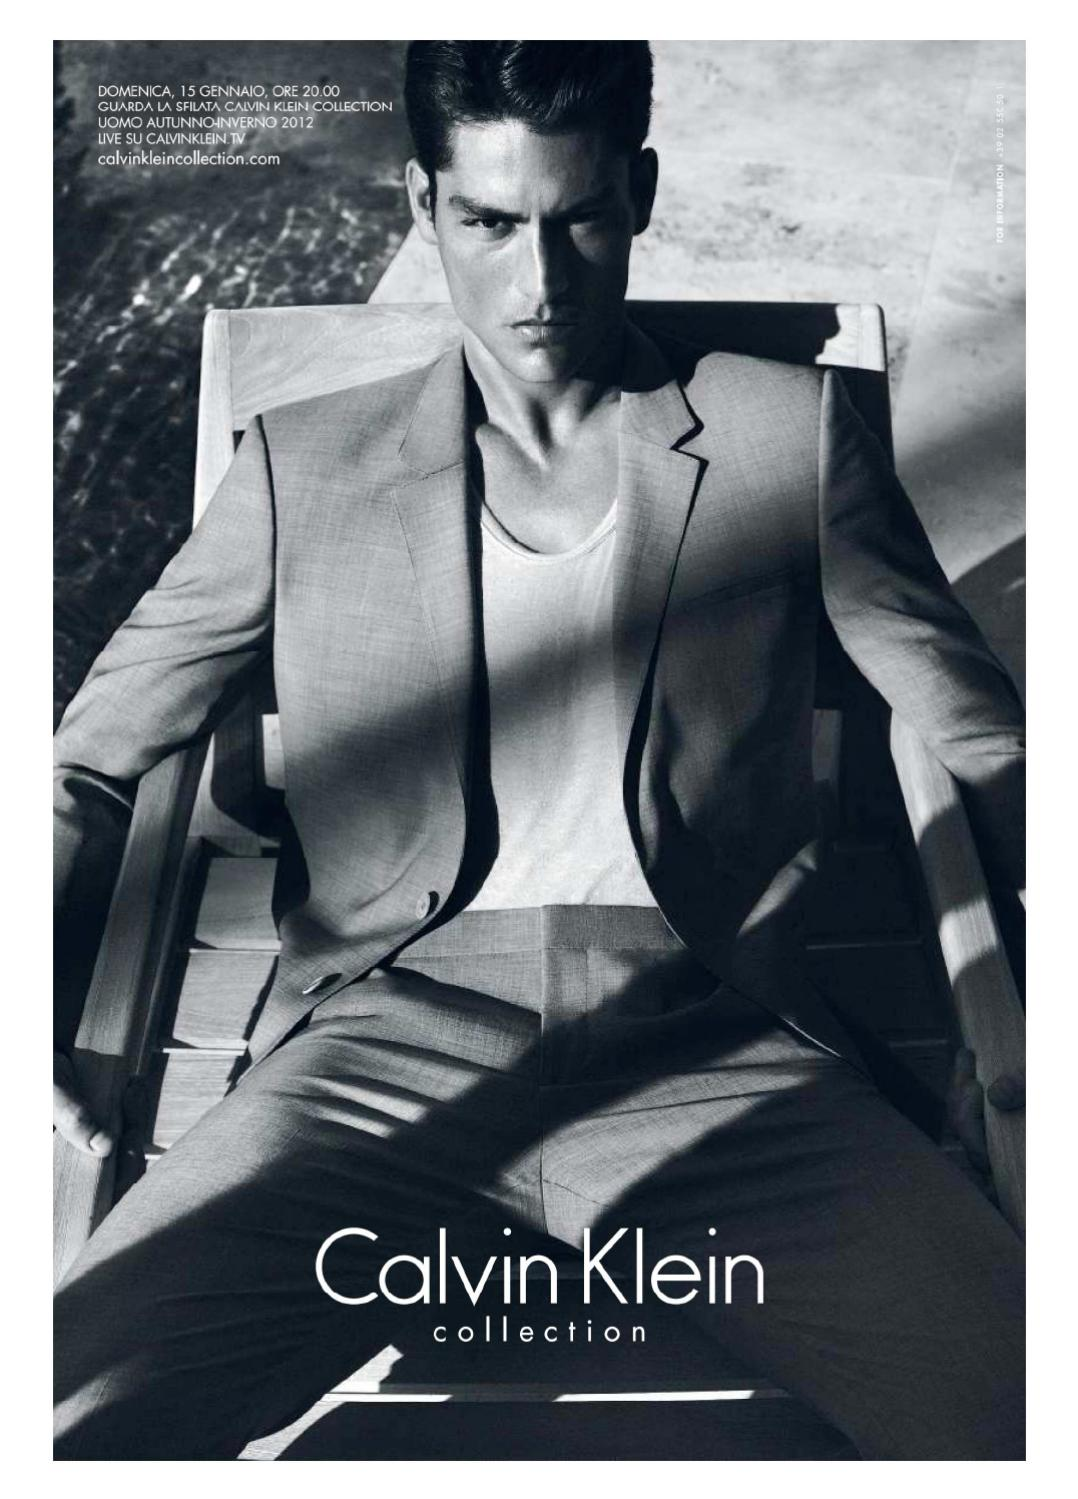 calvin klein collection spring summer 2012 ad campaign art8amby s blog